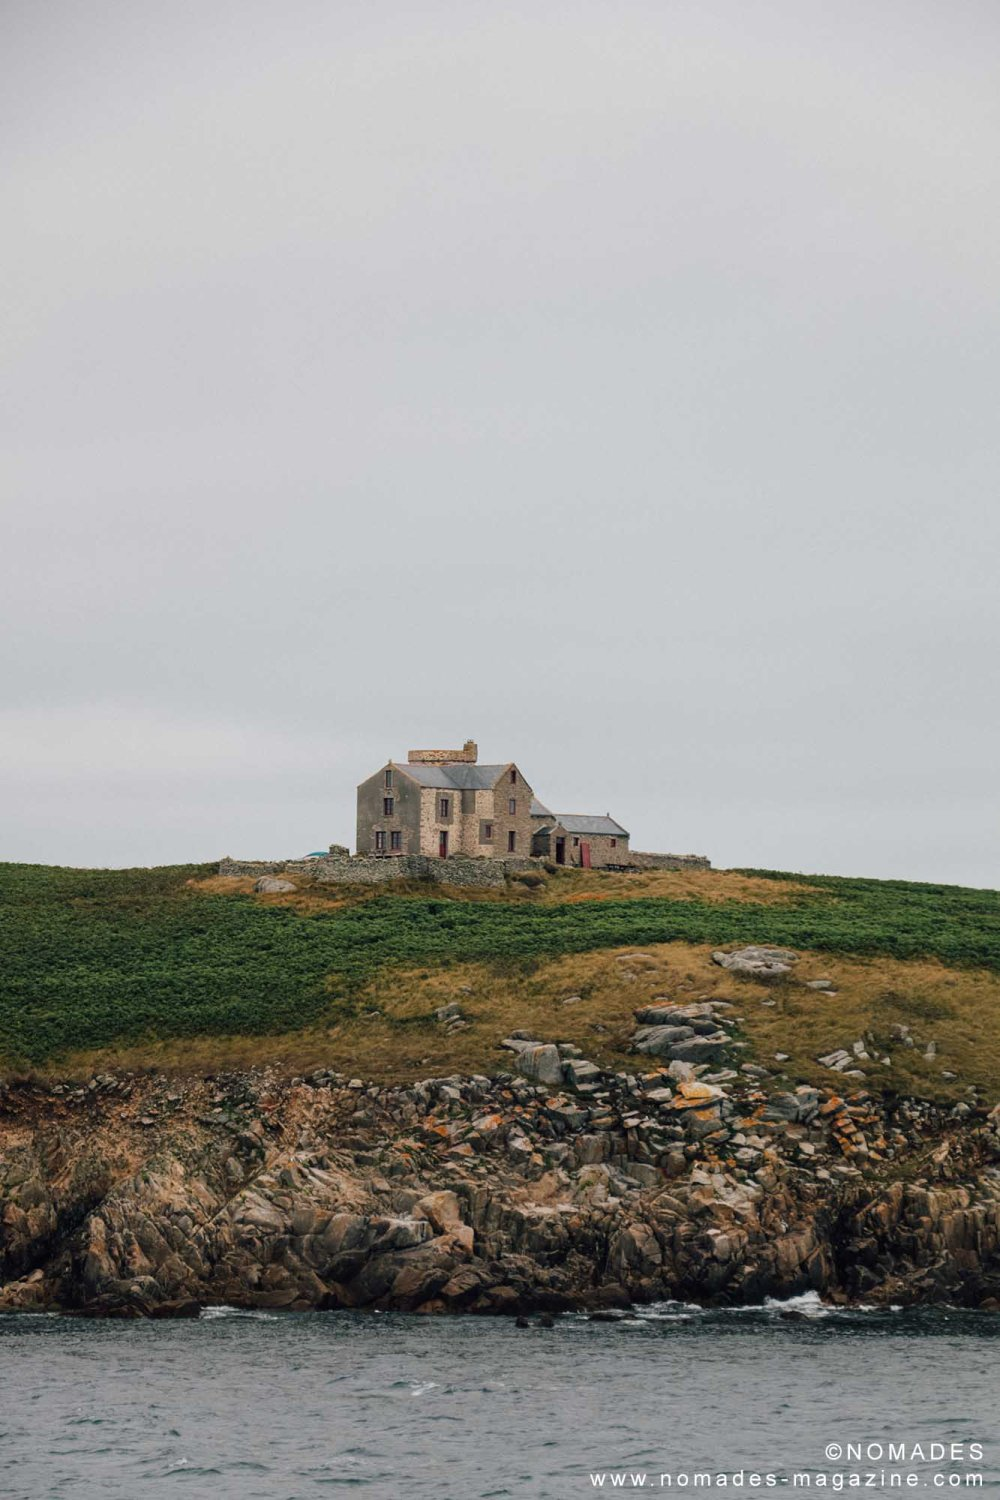 ouessant-by-nomades-4bis